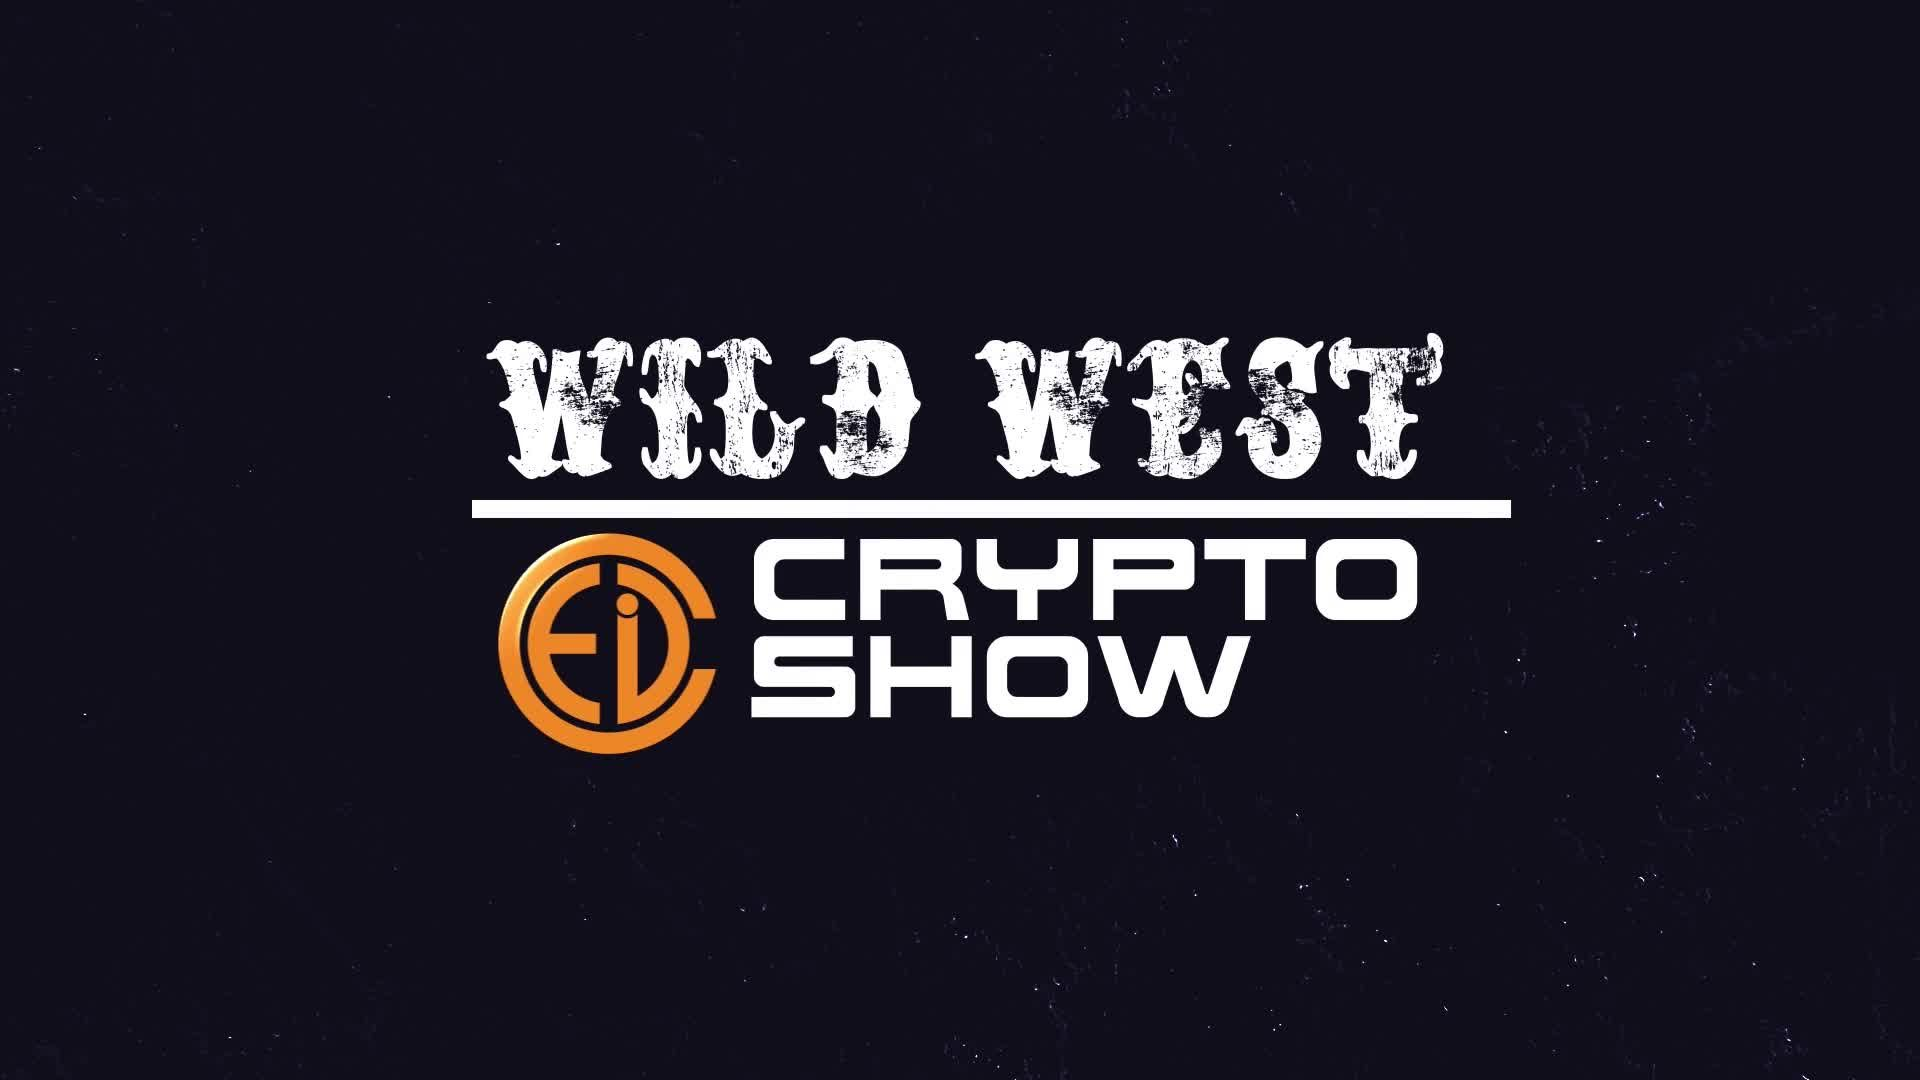 CryptoCurrencyWire Videos-The Wild West Crypto Show The Wild West Crypto Show Posits Bitcoin May Benefit from Pandemic   CryptoCurrencyWire on The Wild West Crypto Show   Episode 123